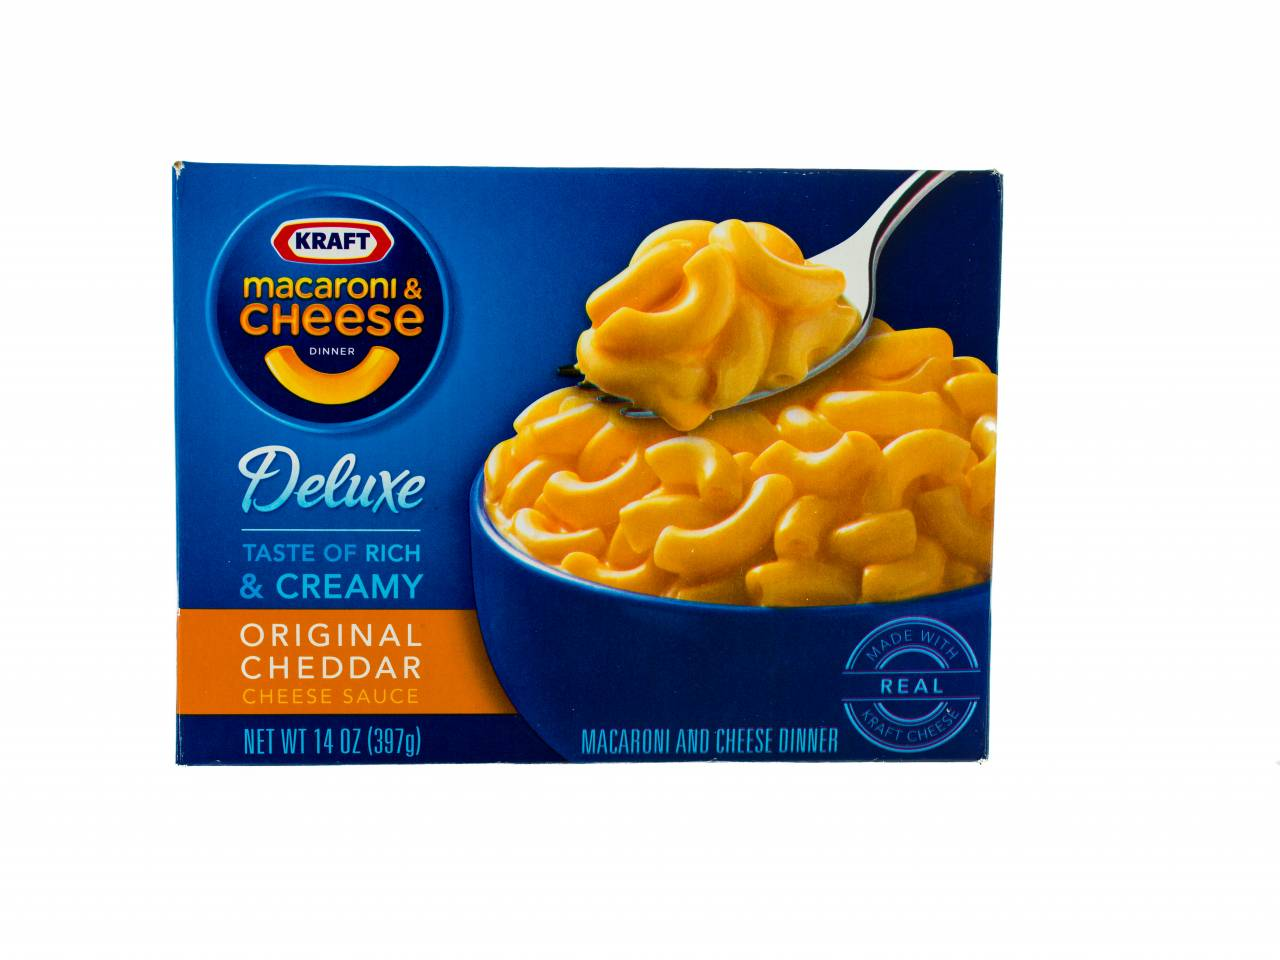 kraft macaroni and cheese vs generic brand Kraft dinner smart (also known as kd smart) is a sub-brand of the kraft dinner brand it represents a line of kraft macaroni and cheese products that contain no artificial flavours, colours or preservatives and have added ingredients like cauliflower, oats or flax seed blended into the noodles.